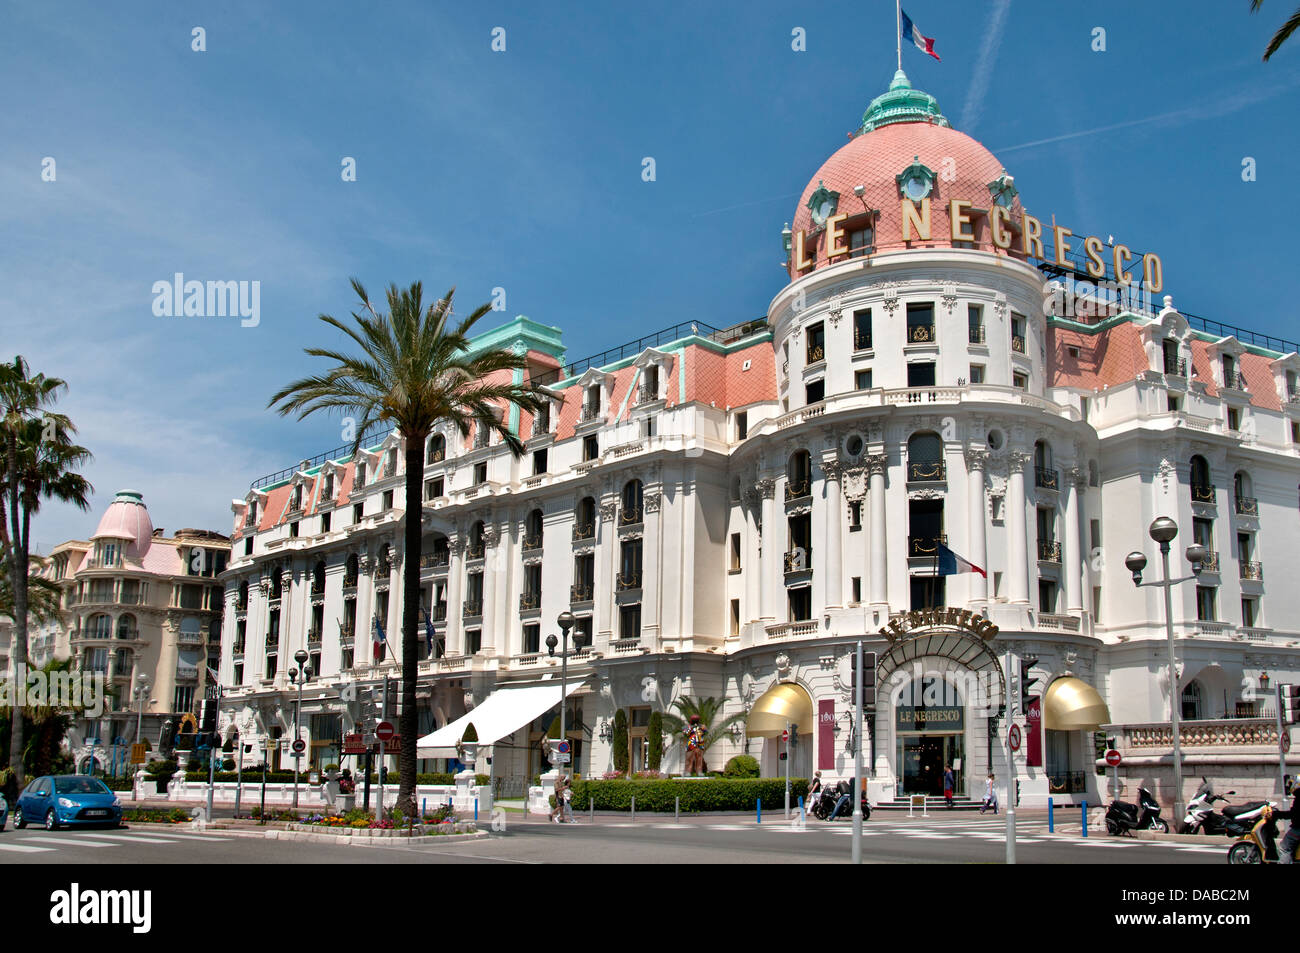 Luxury hotels - Hotel Negresco Nice Beach Promenade des Anglais French Riviera Cote D'Azur France - Stock Image